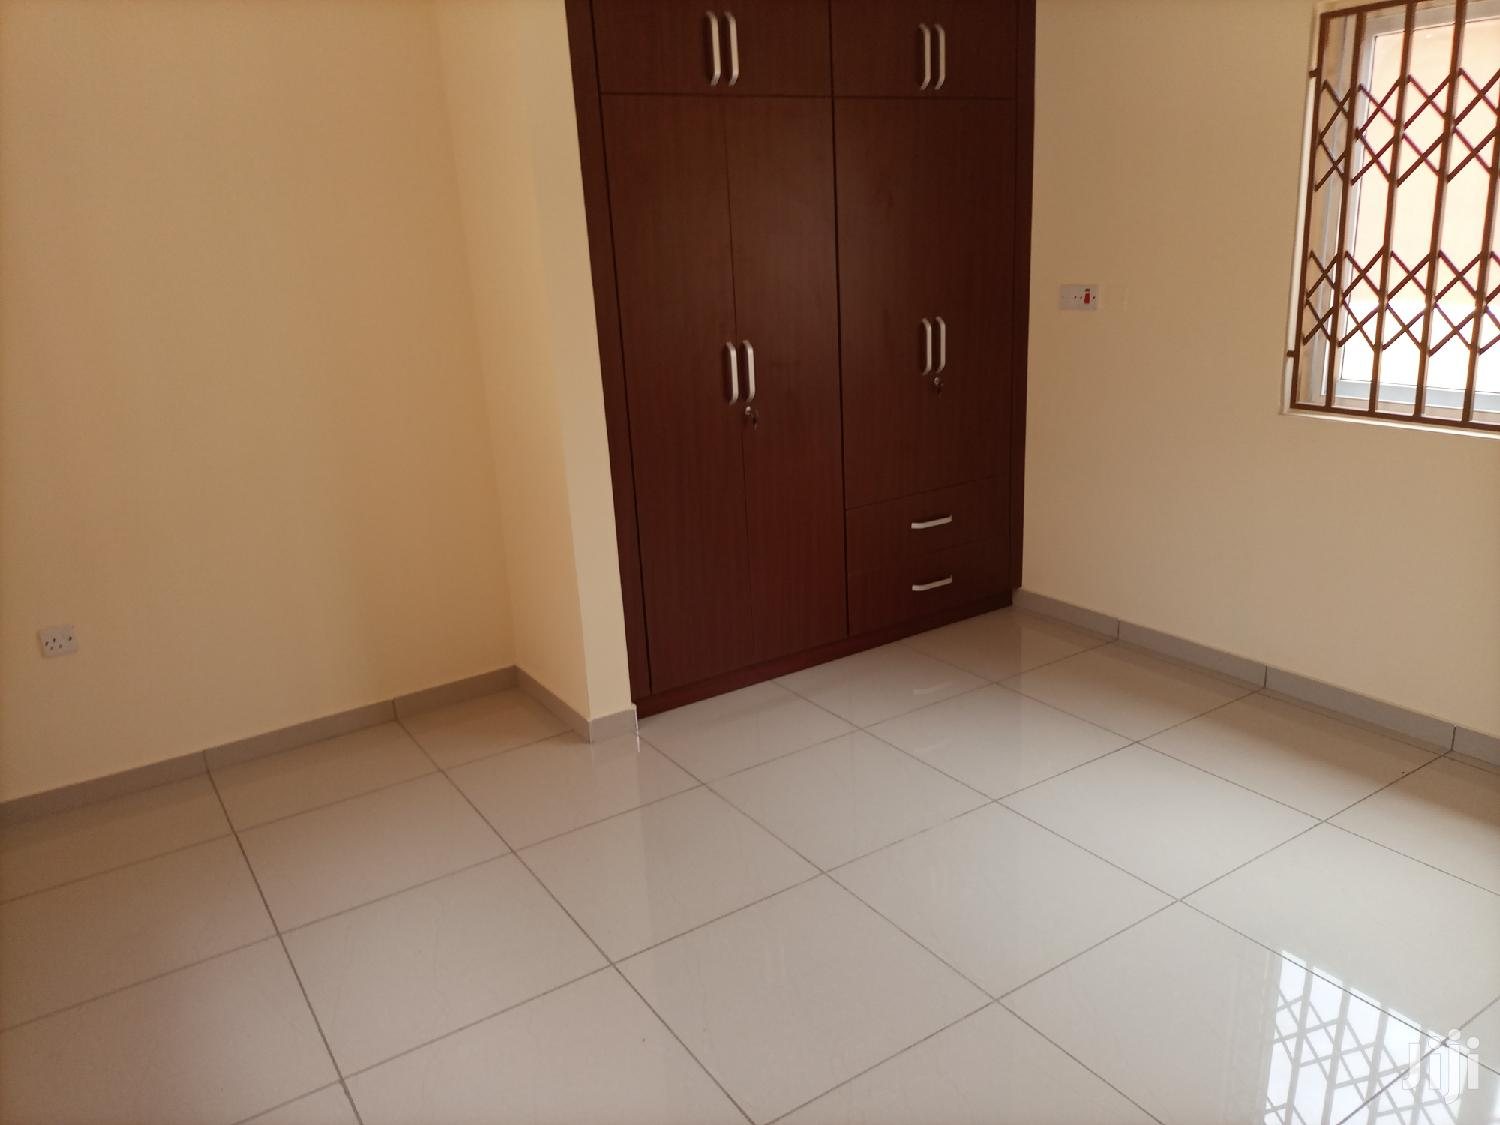 NEWLY BUILT 3 Bedroom House At Community 25 Devtraco | Houses & Apartments For Sale for sale in Tema Metropolitan, Greater Accra, Ghana